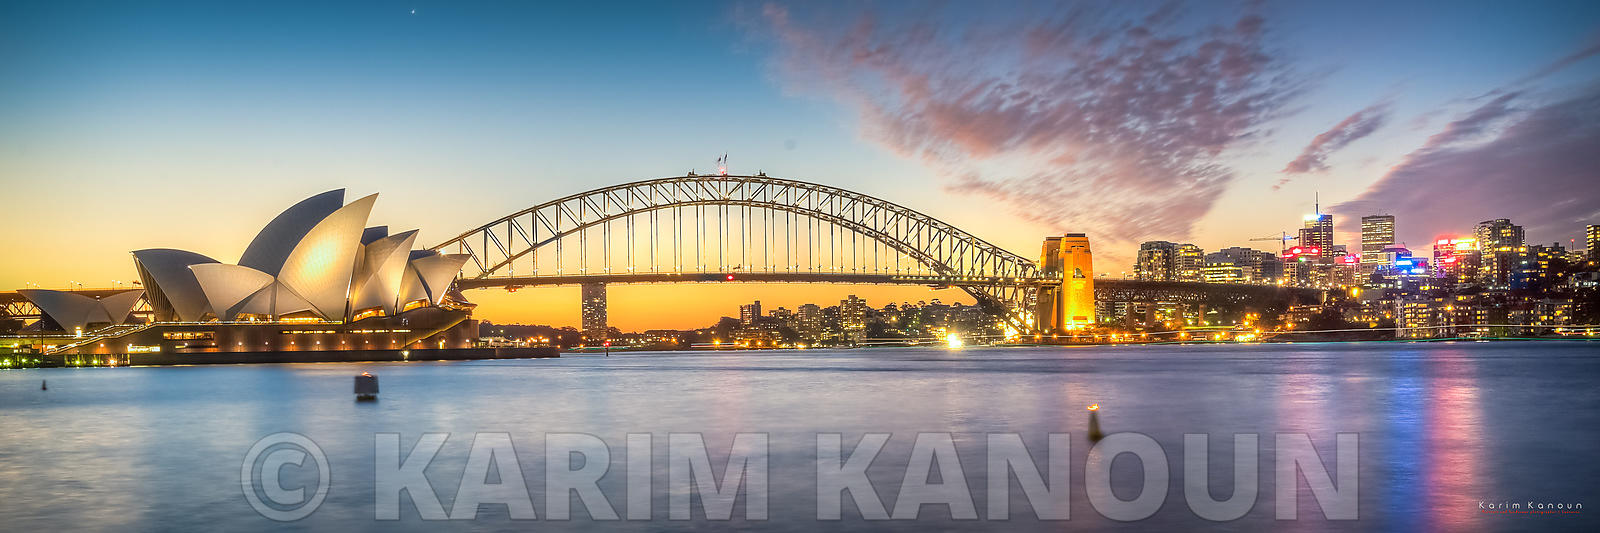 Panorama - Sydney Opera House at sunset